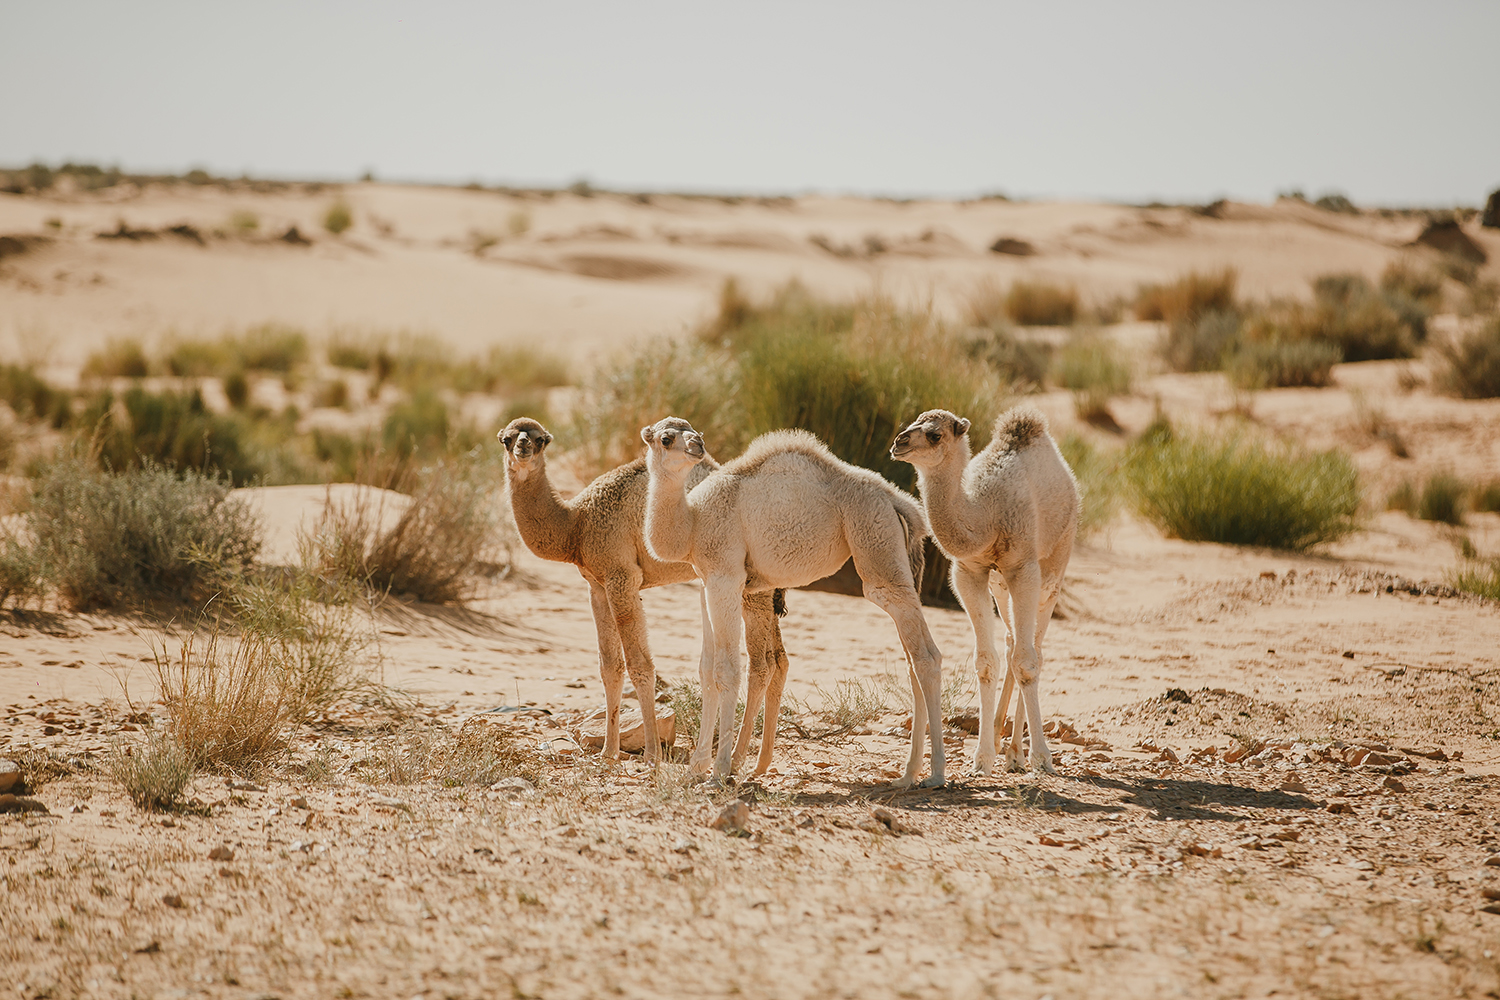 SN2_1394-sophie-narses-photographe-Tunisie-Voyage-book-shooting-geneve-mariage-suisse-famille-animaux-tirages-art-cours-photo-paysages-desert